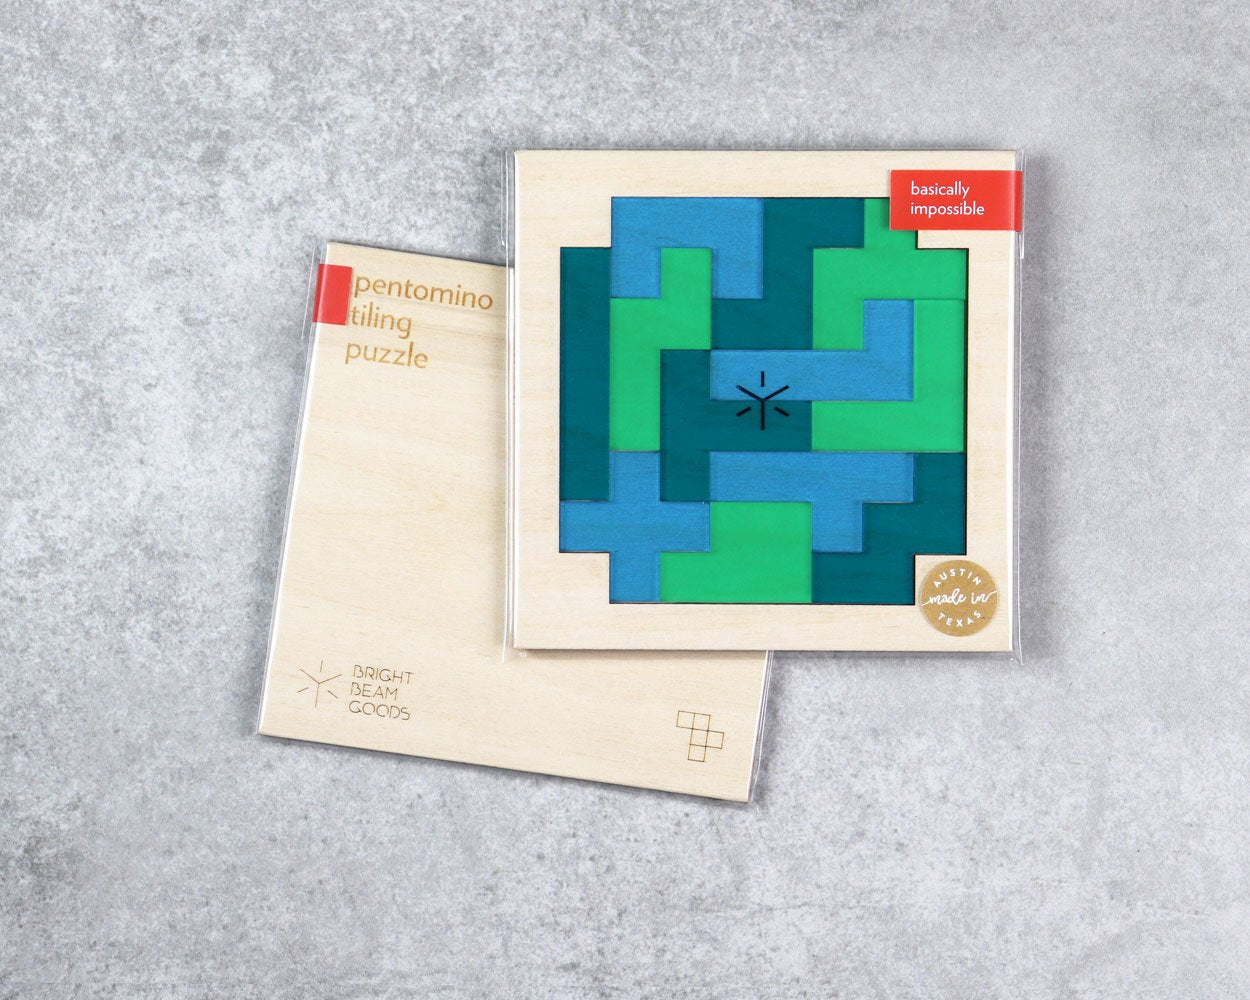 Earth square pentomino puzzle in packaging